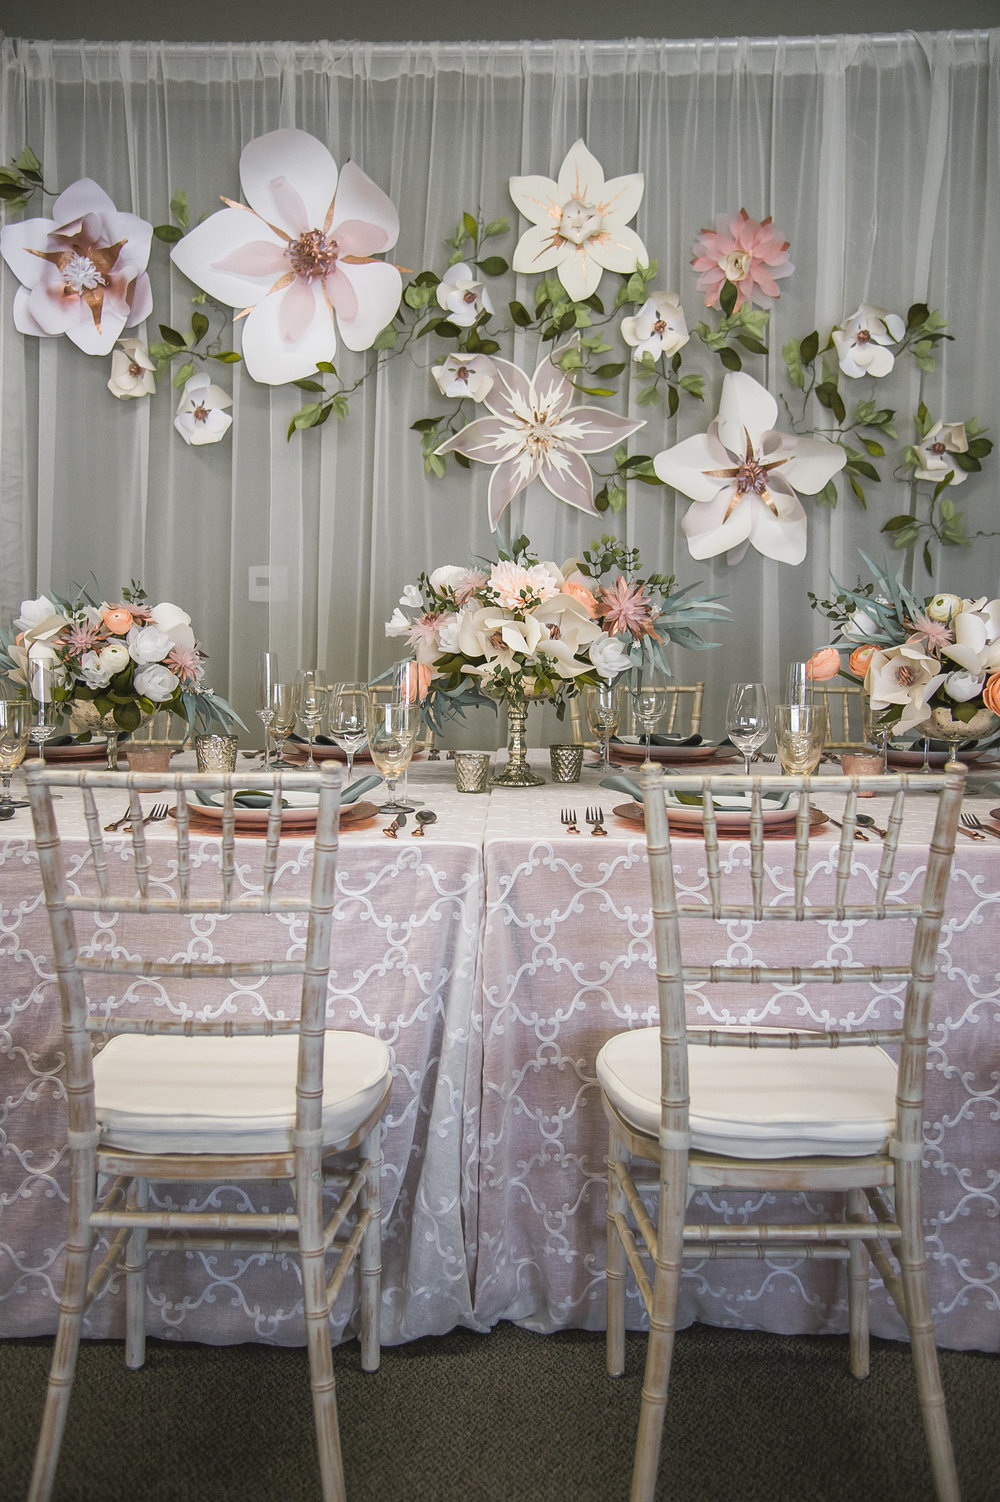 Full display of centerpieces and backdrop